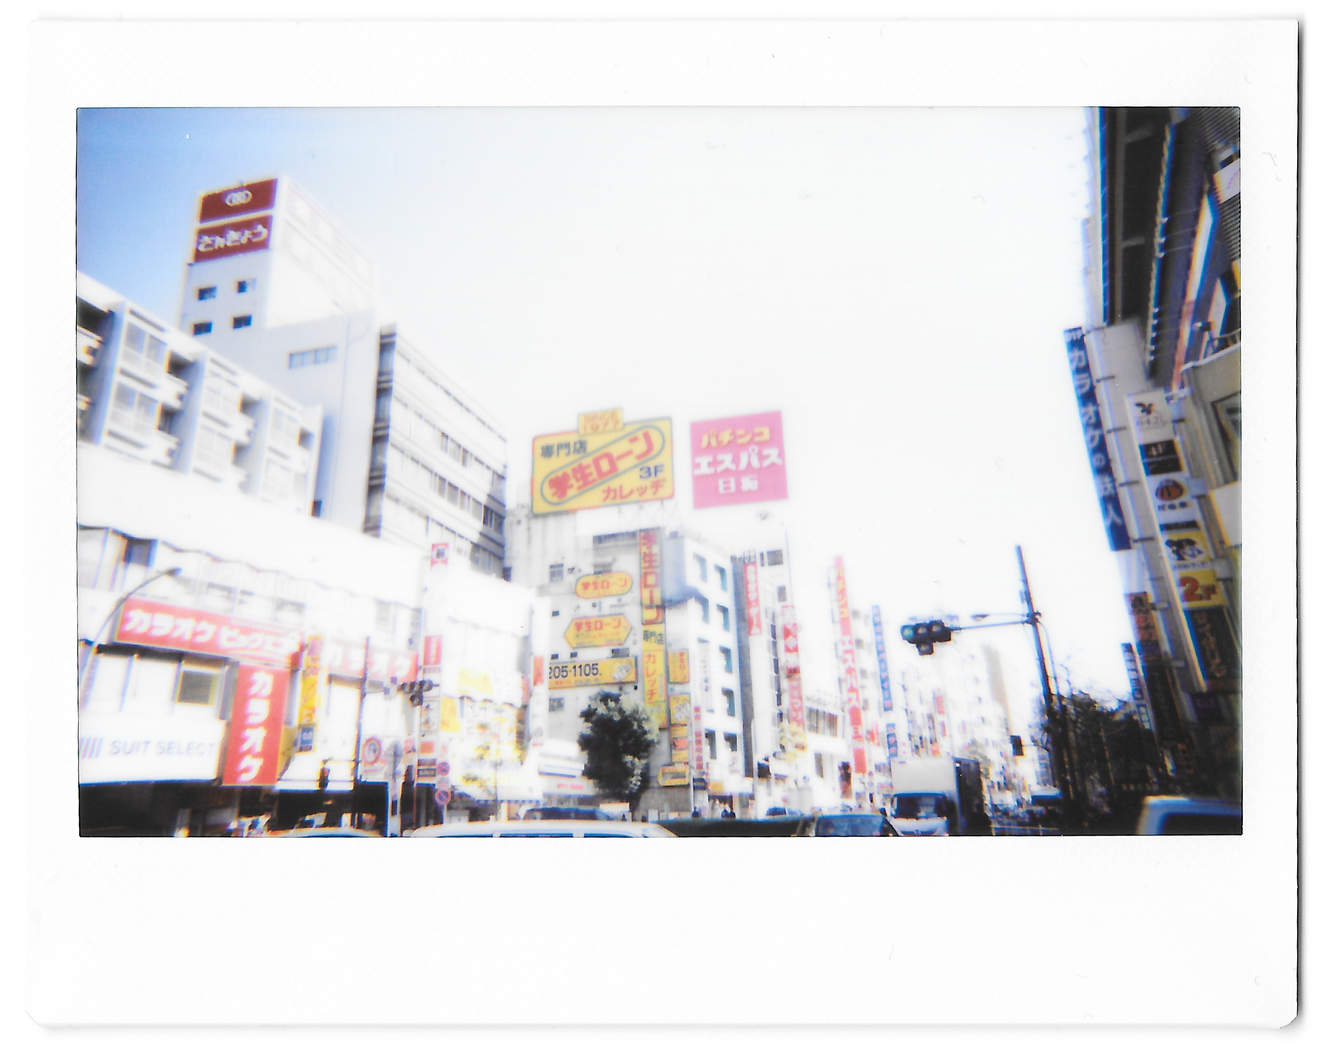 """Instant photo for Day 114 of """"A Year in an Instant"""" by Nuno Coelho Santos"""